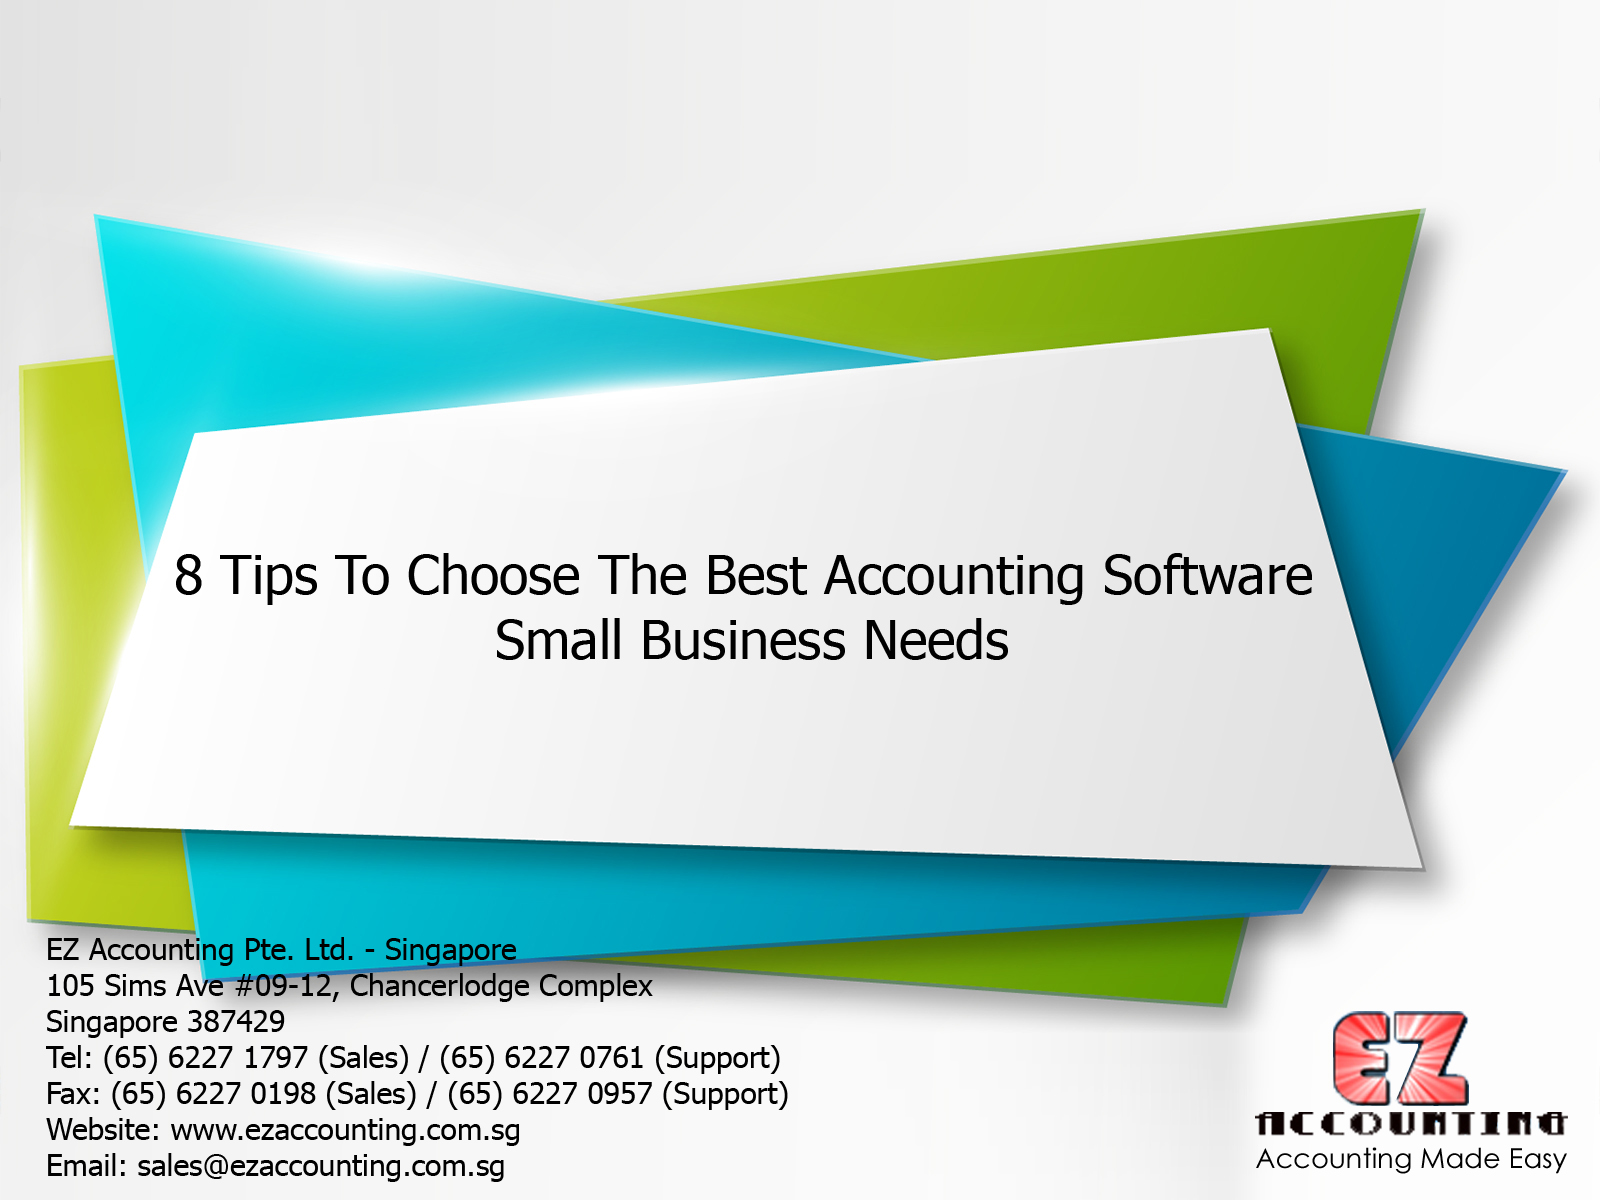 8 Tips to Choose the Best Accounting Software – Small Business Needs 1600x1200